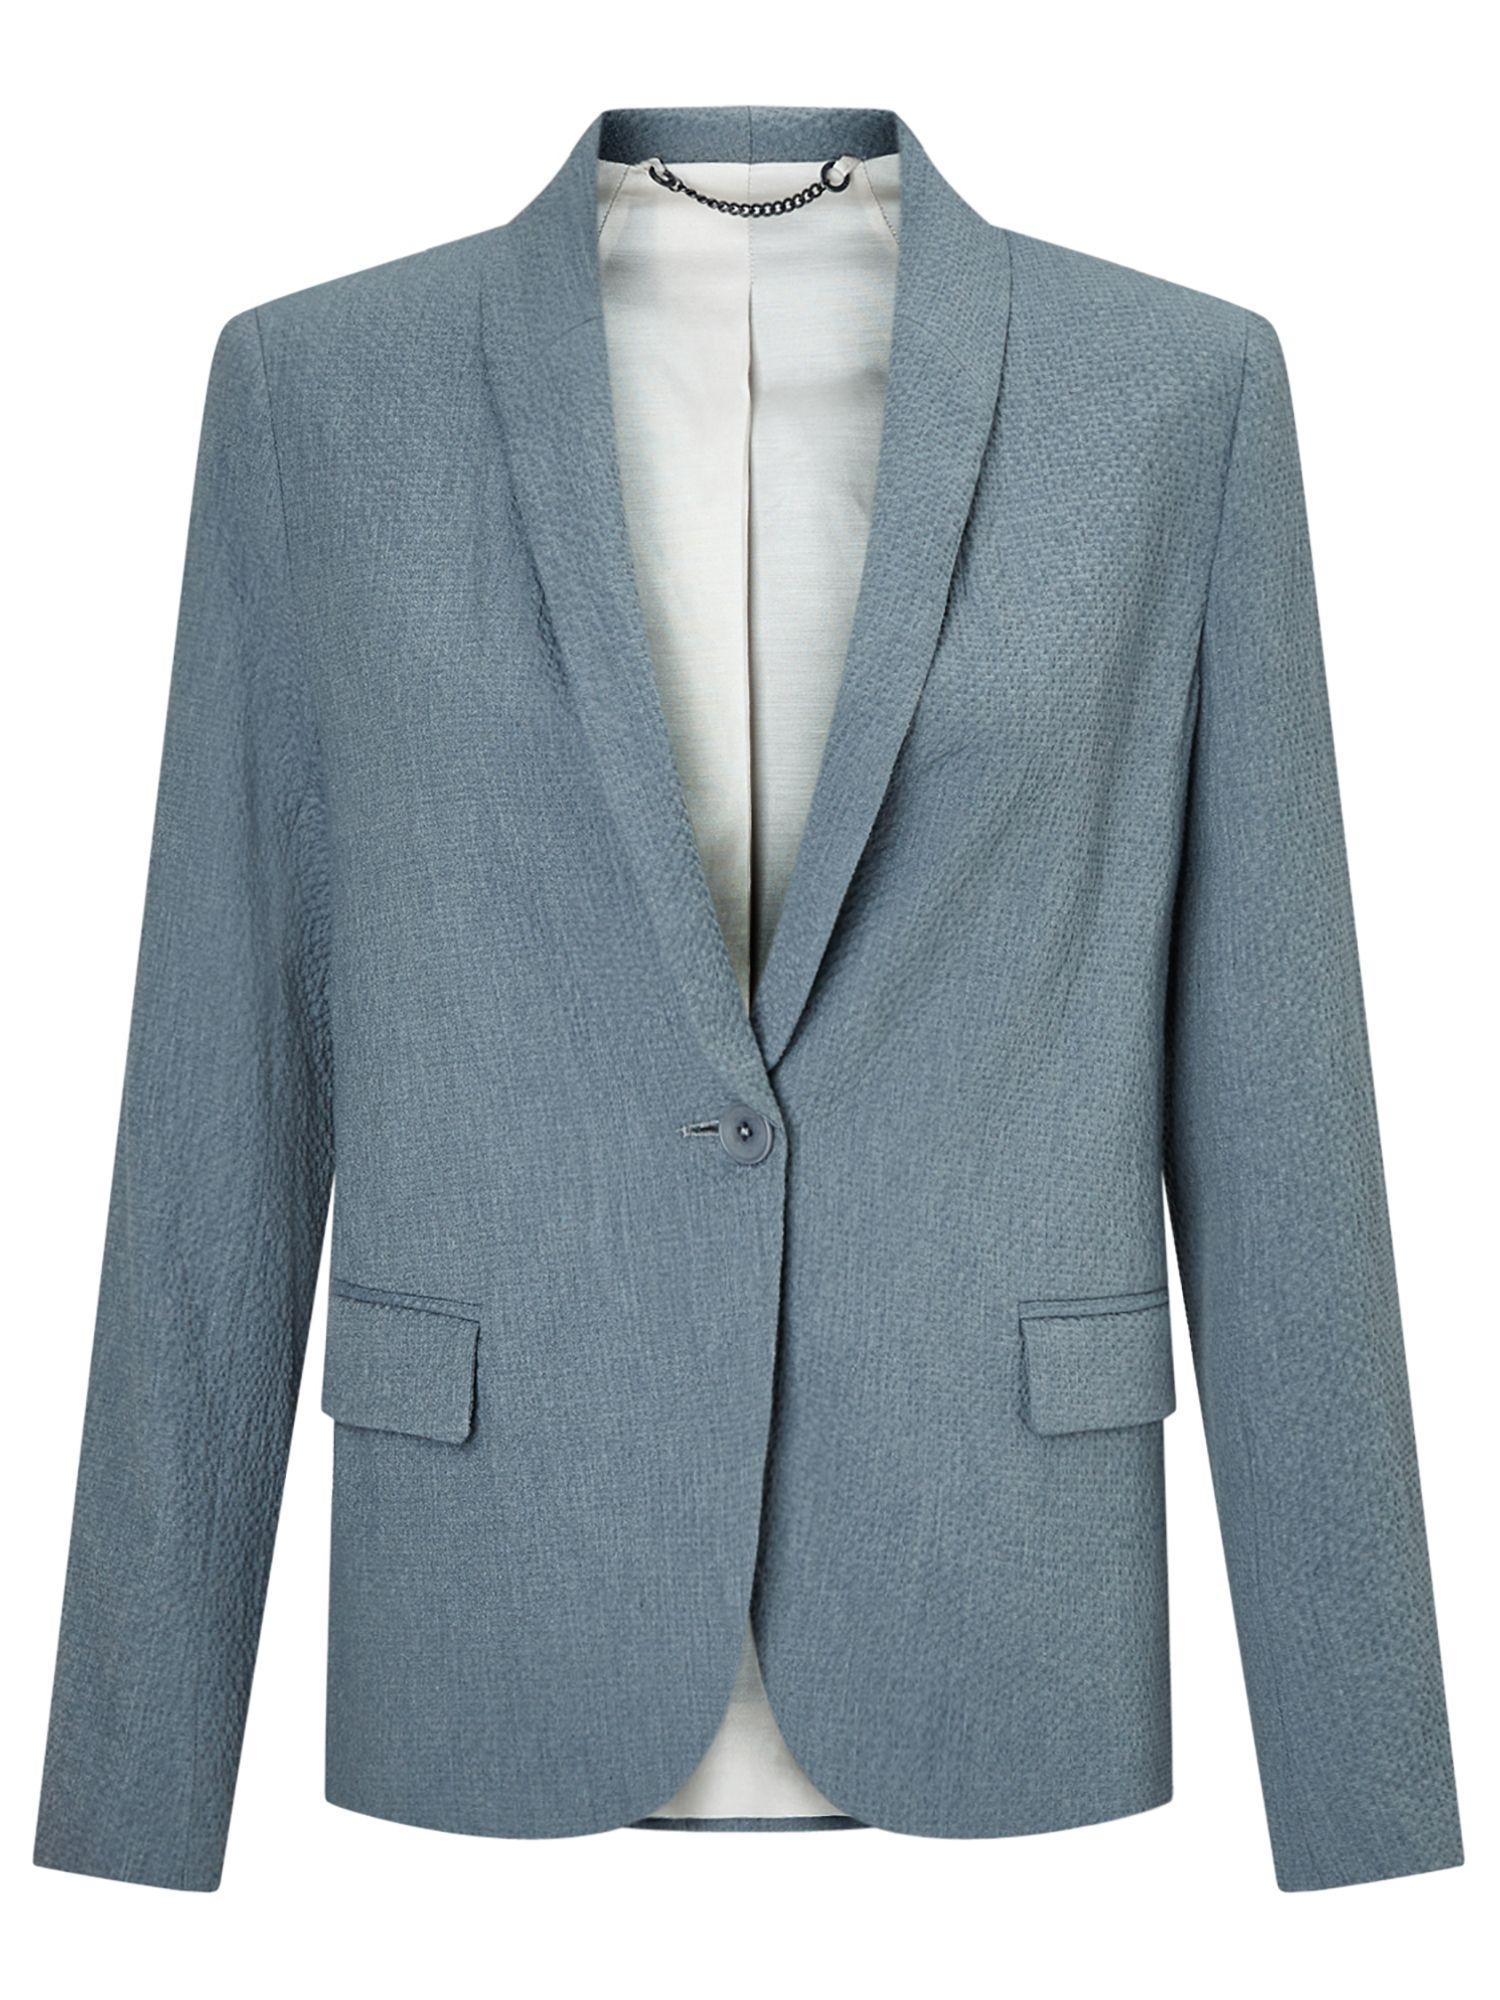 Jigsaw Seersucker Portofino Jacket, Blue